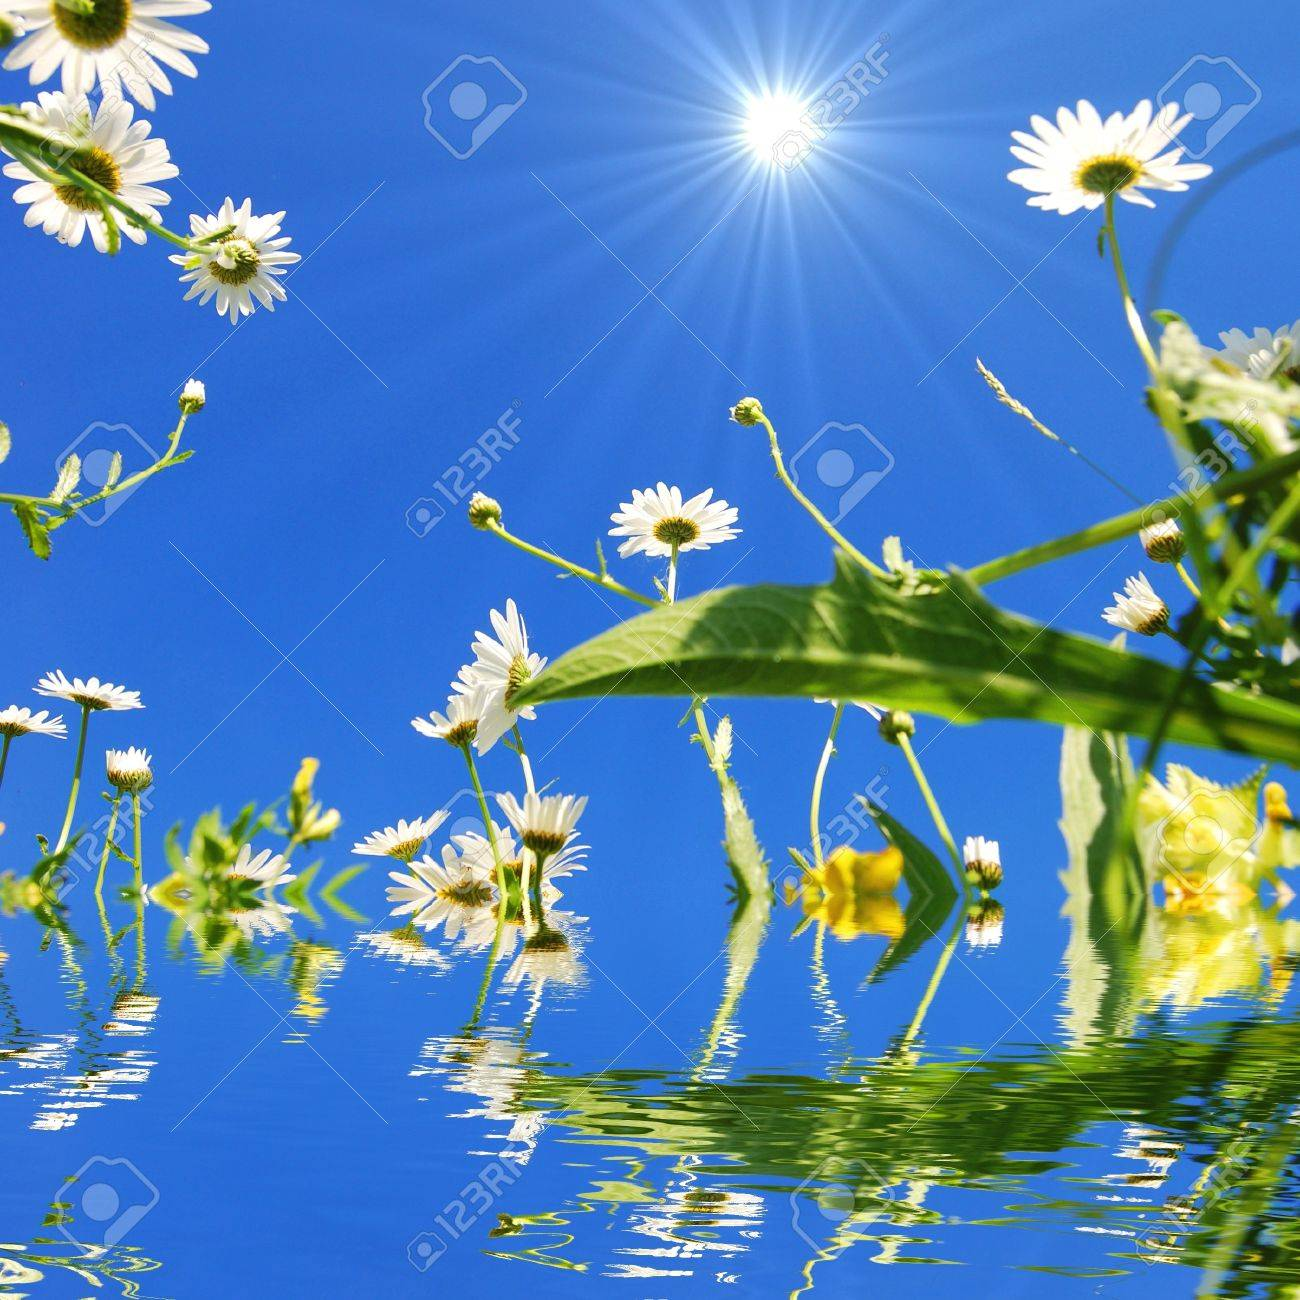 daisy flower and water reflection showing summer concept Stock Photo - 7664104